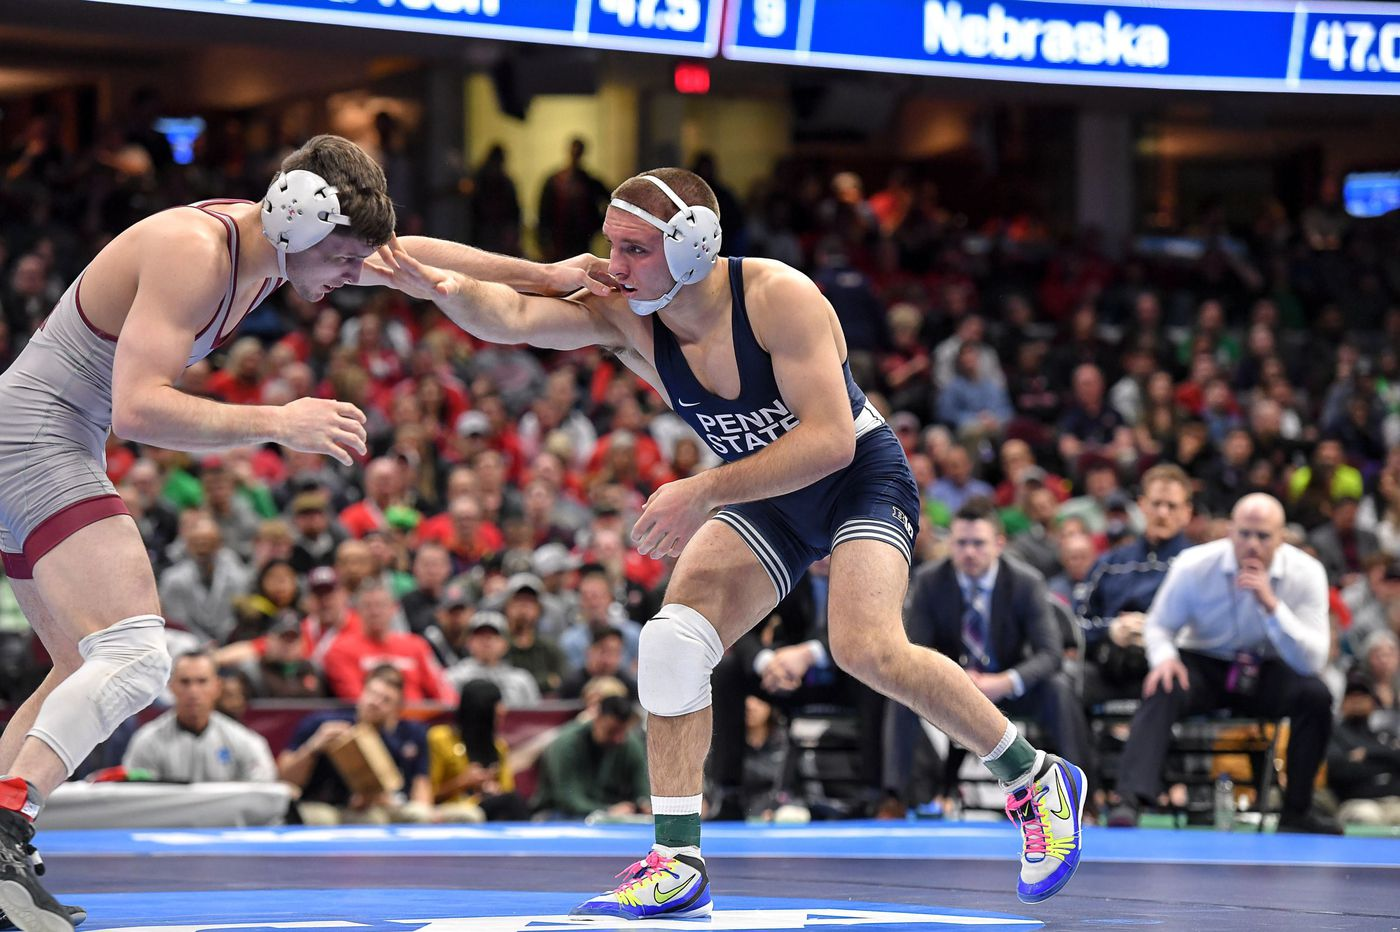 Penn State's Zain Retherford wrestled for a shot at the Olympics amid the COVID-19 outbreak. Why, and what did it lead to?   Mike Sielski